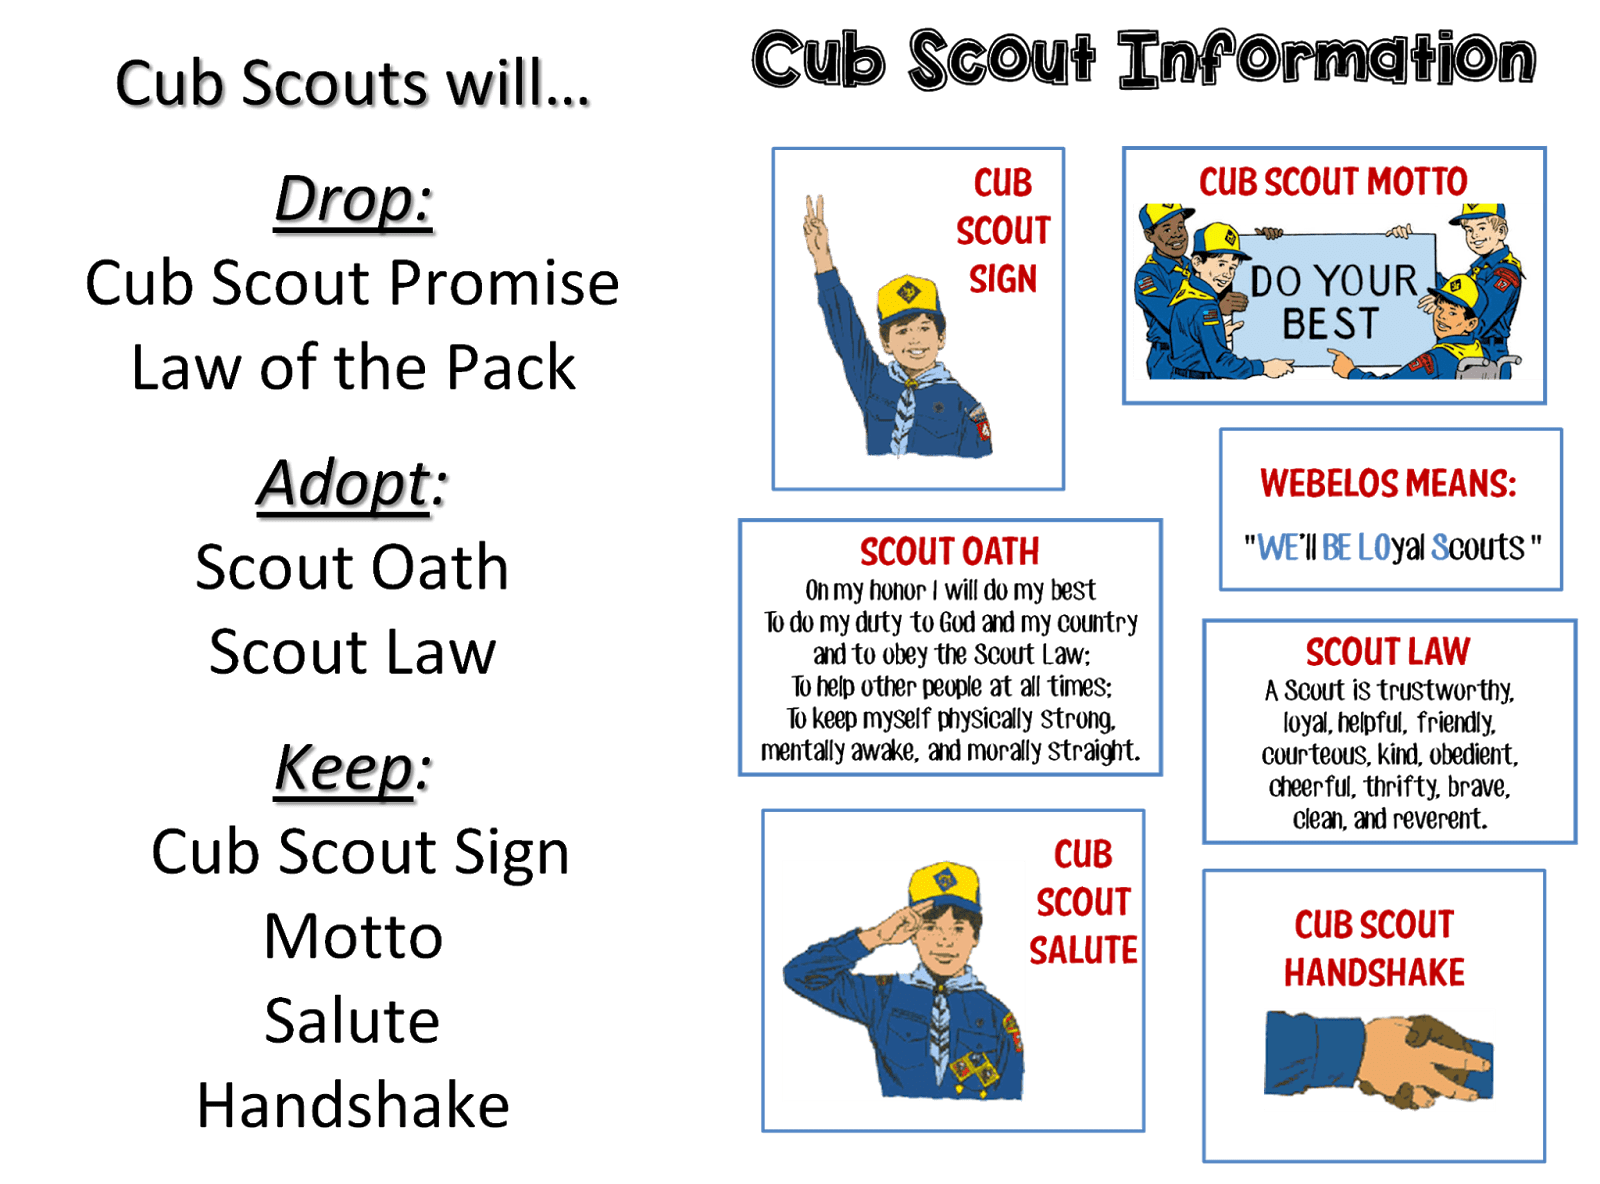 Strong Armor Cub Scouts